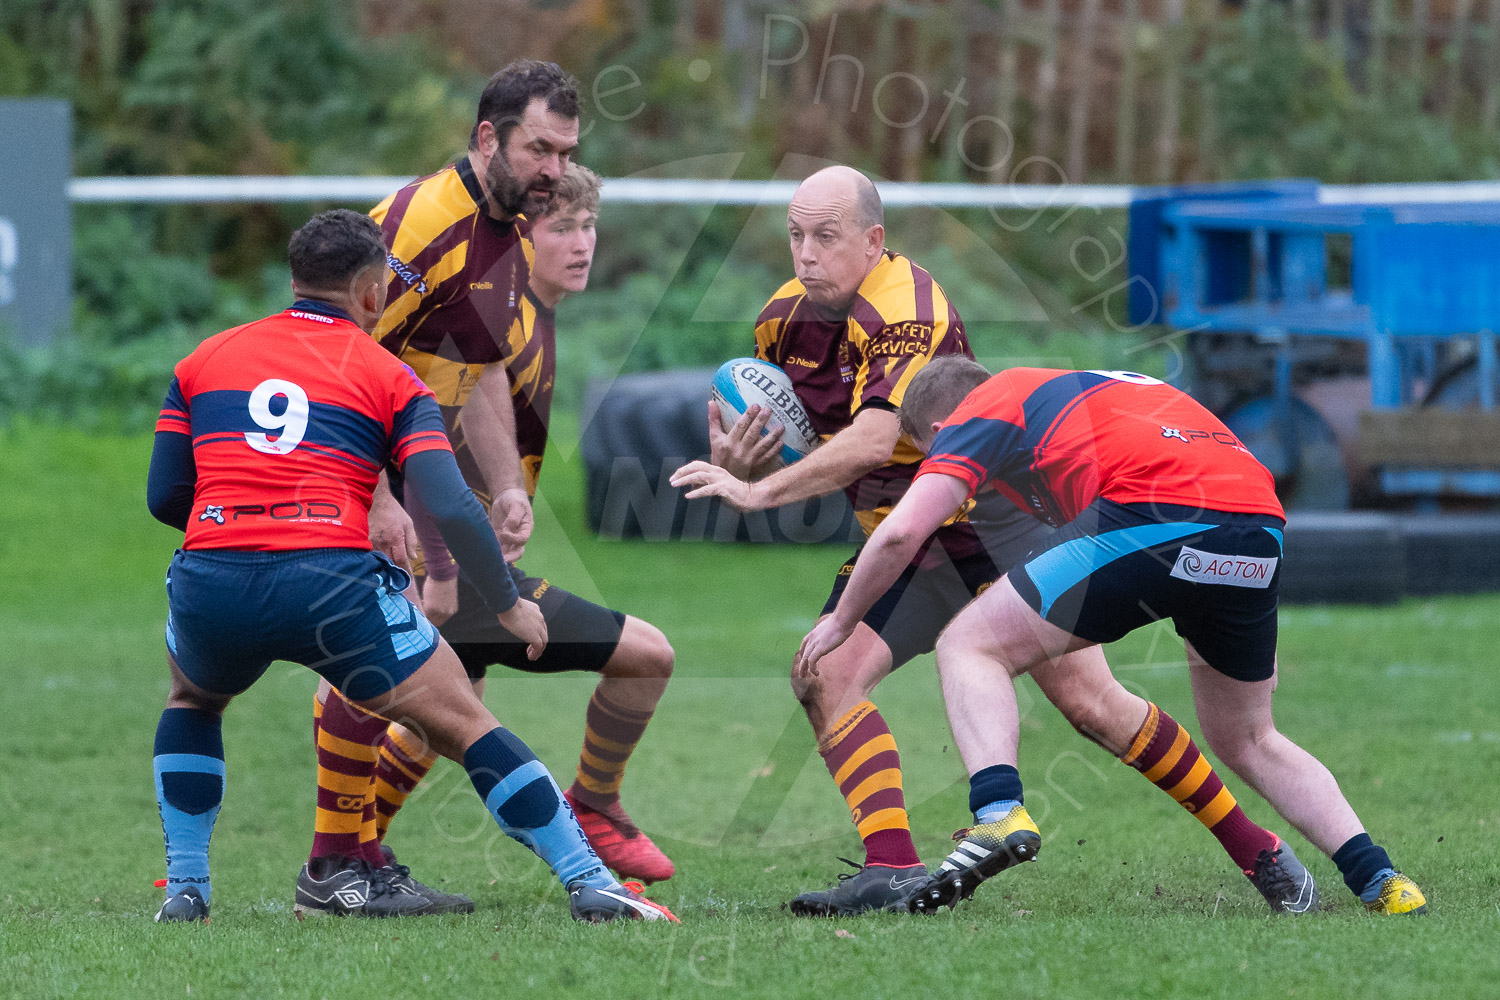 20181027 Amp Extras vs St Neots 2nd XV #2304